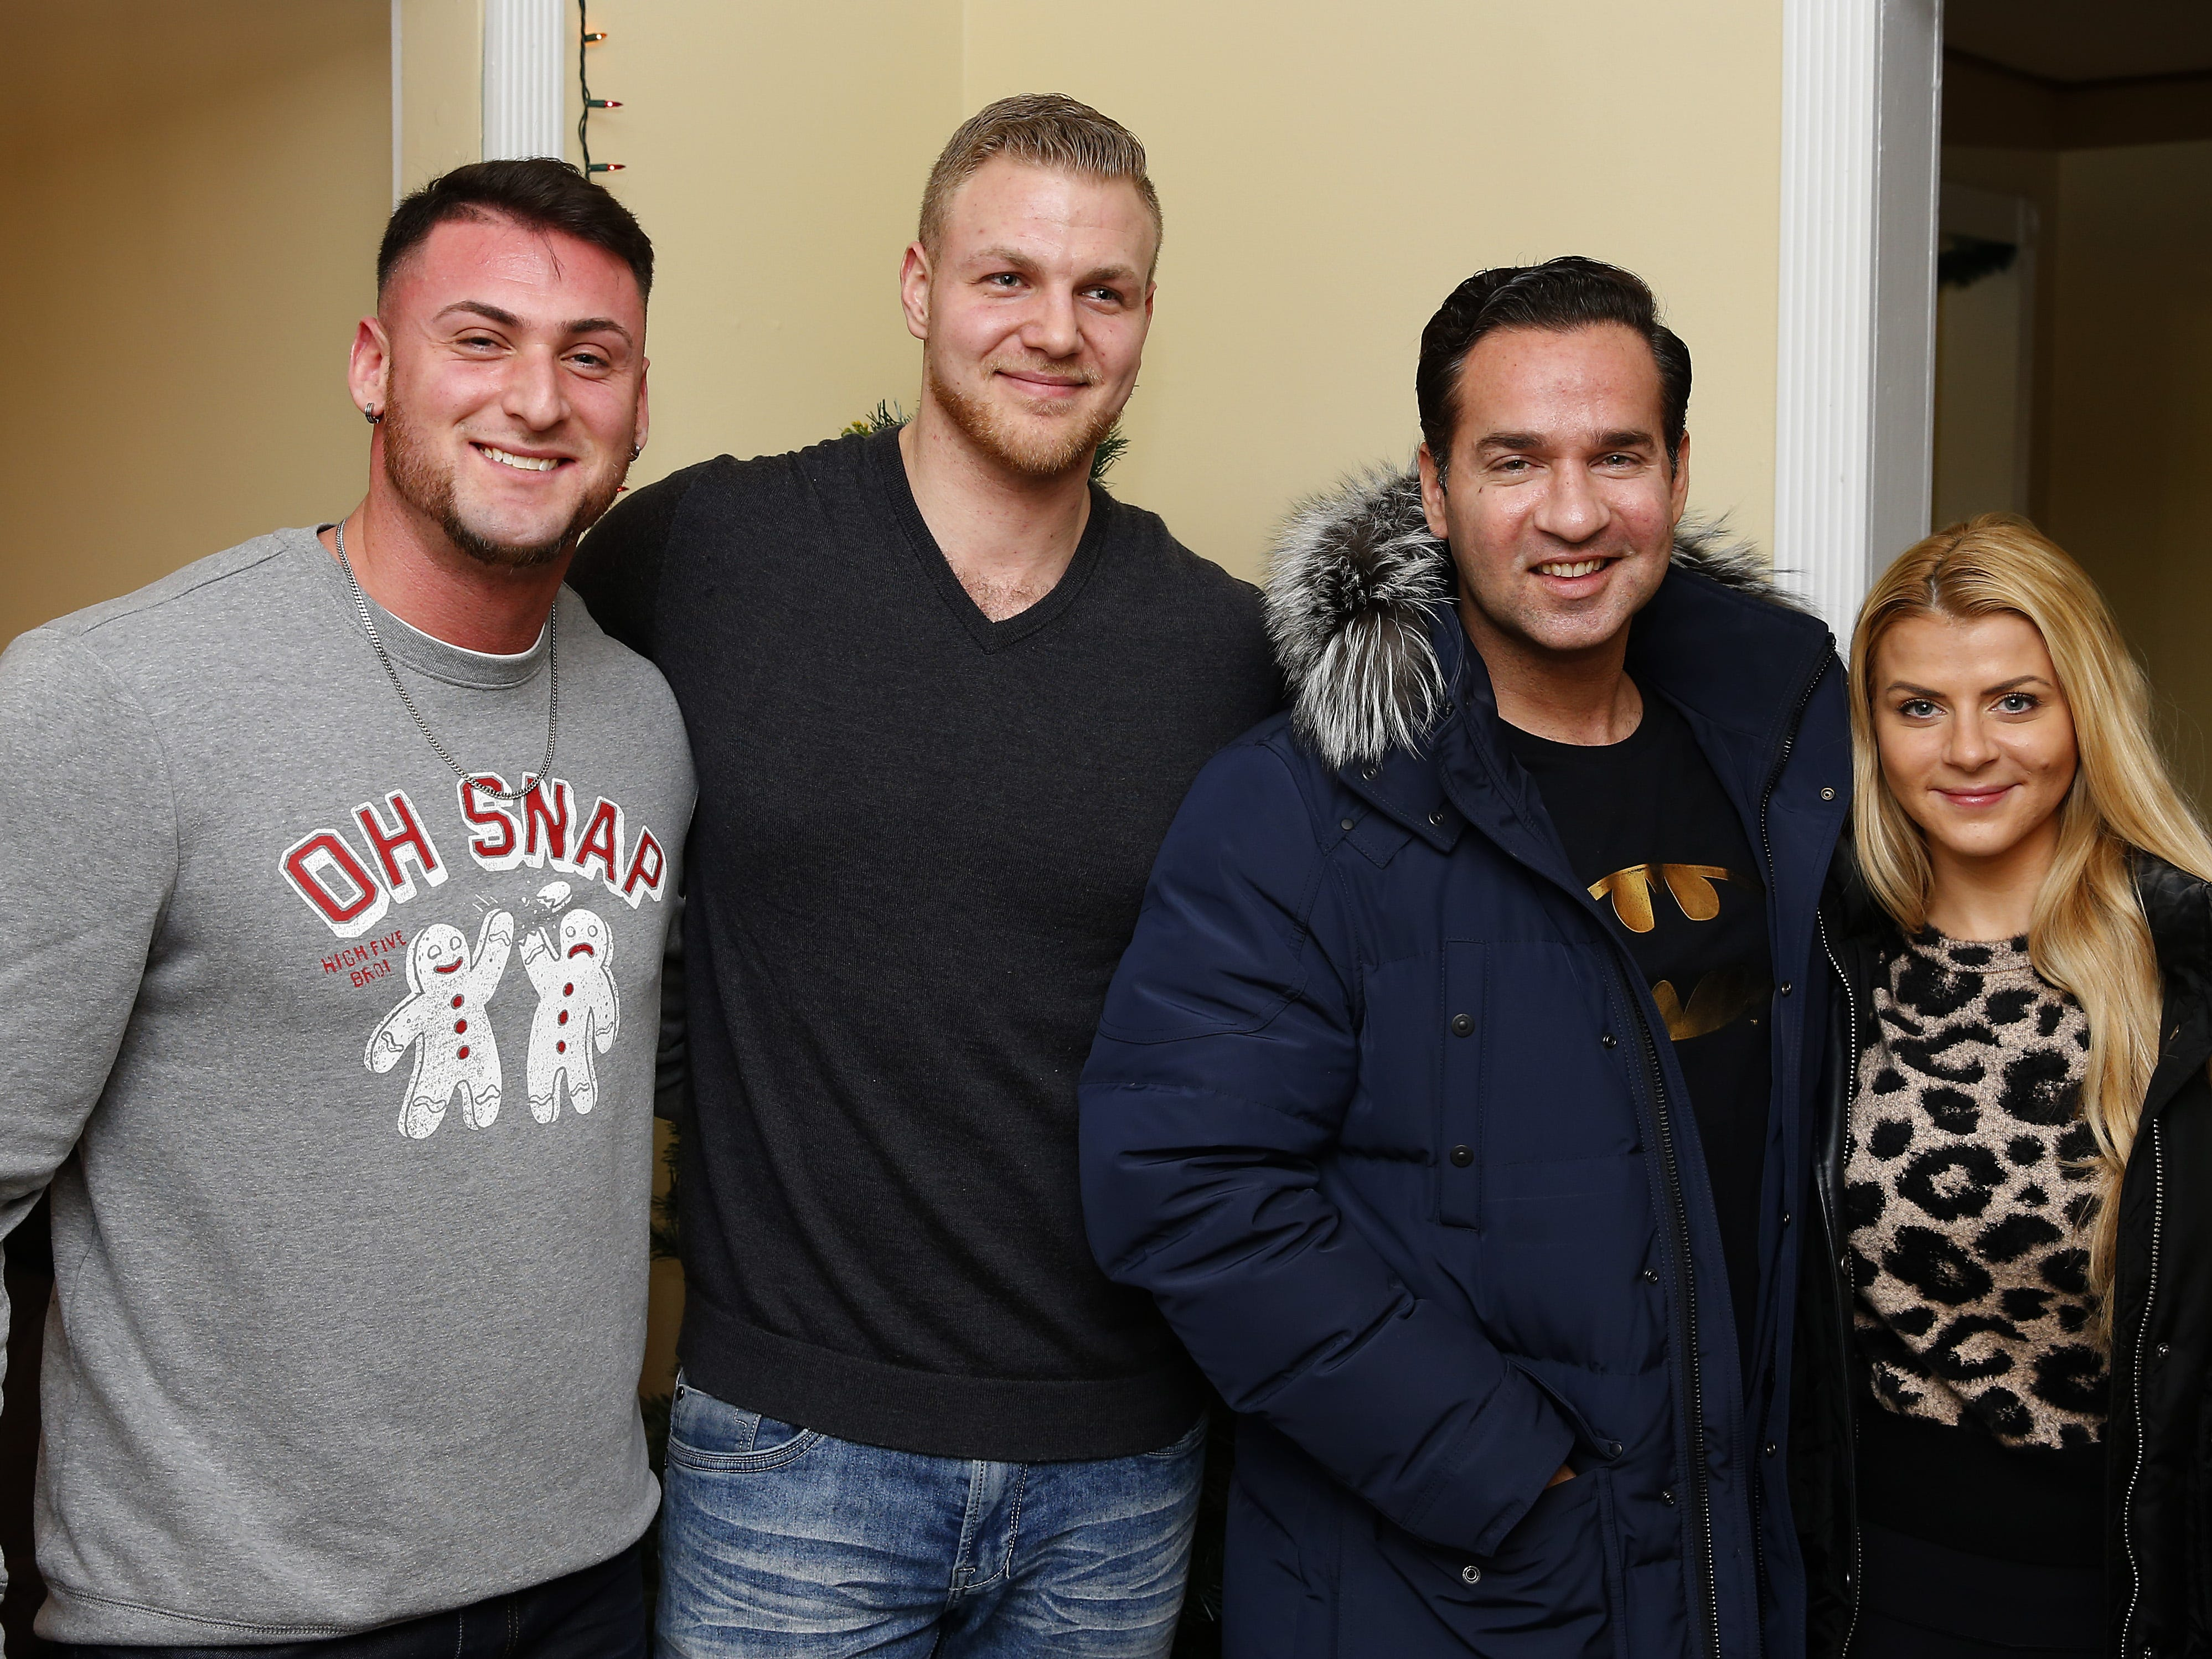 """(left to right) Phoenix Recovery house co-owners Kevin Mirda and Shawn Metz seen with  Mike""""The Situation """" Sorrentino and his wife Loren Sorrentino at the annual Christmas party. Eatontown, N.J.  Wednesday, December 19, 2018 Noah K. Murray-Correspondent/Asbury Park Press"""